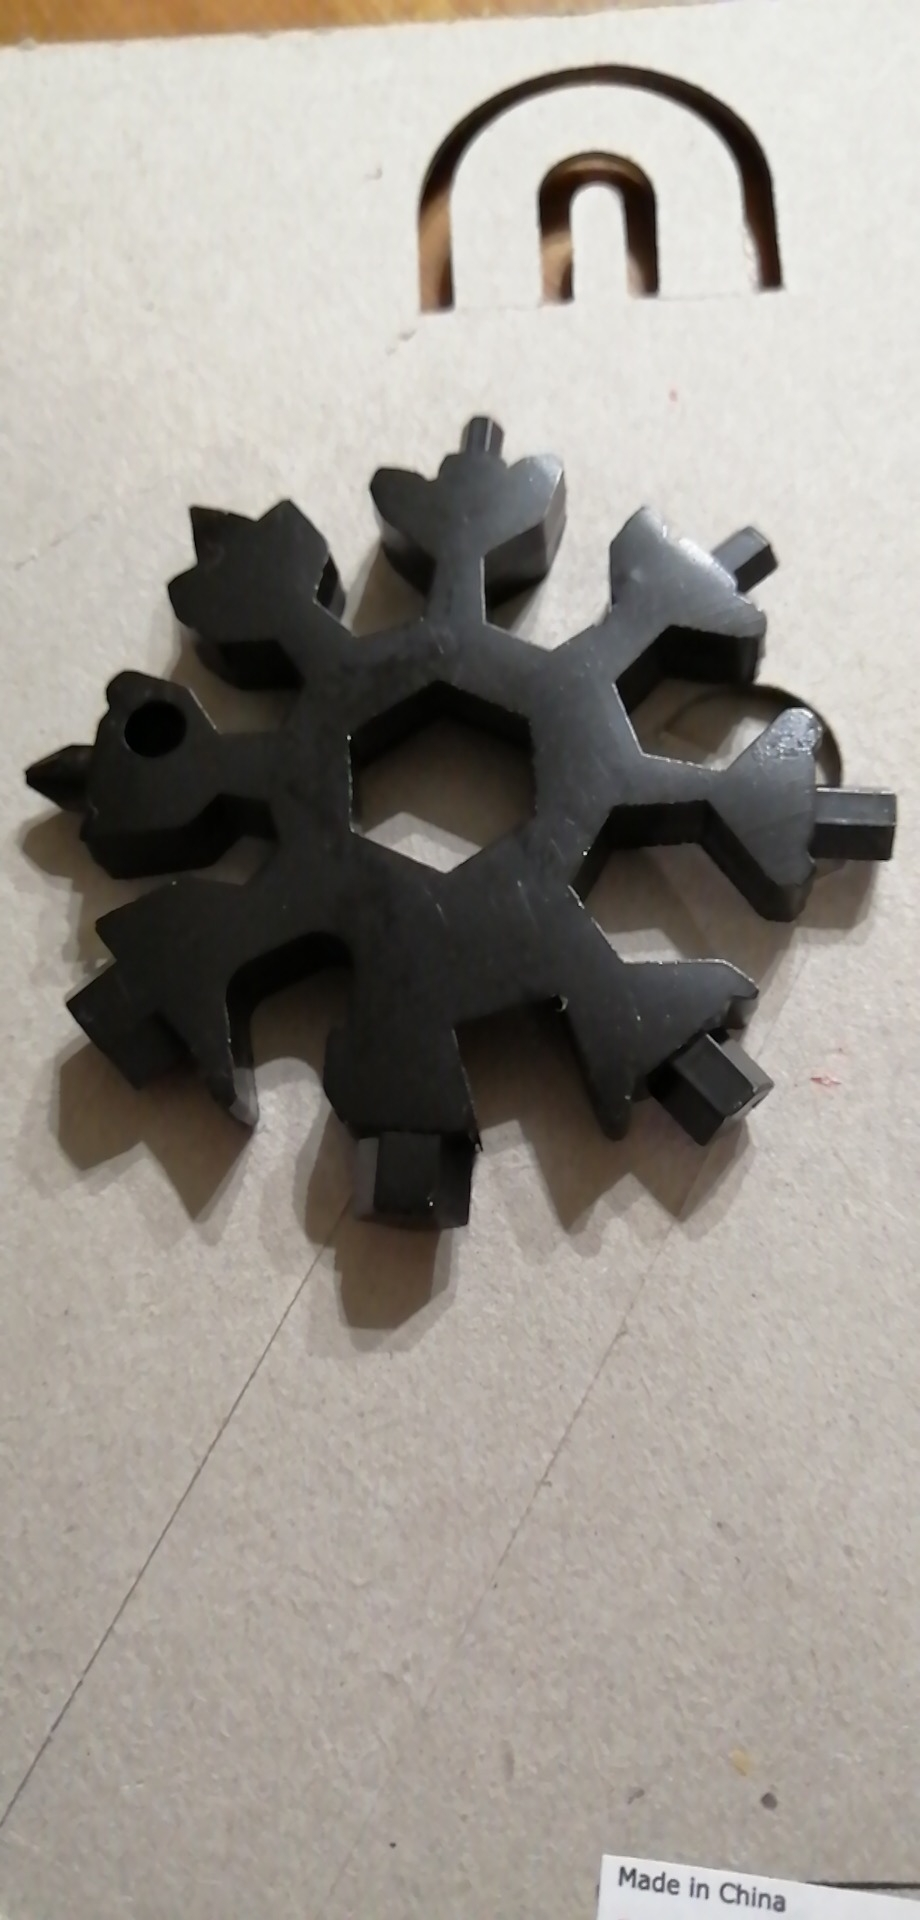 18-in-1 stainless steel snowflakes multi-tool - googstage photo review